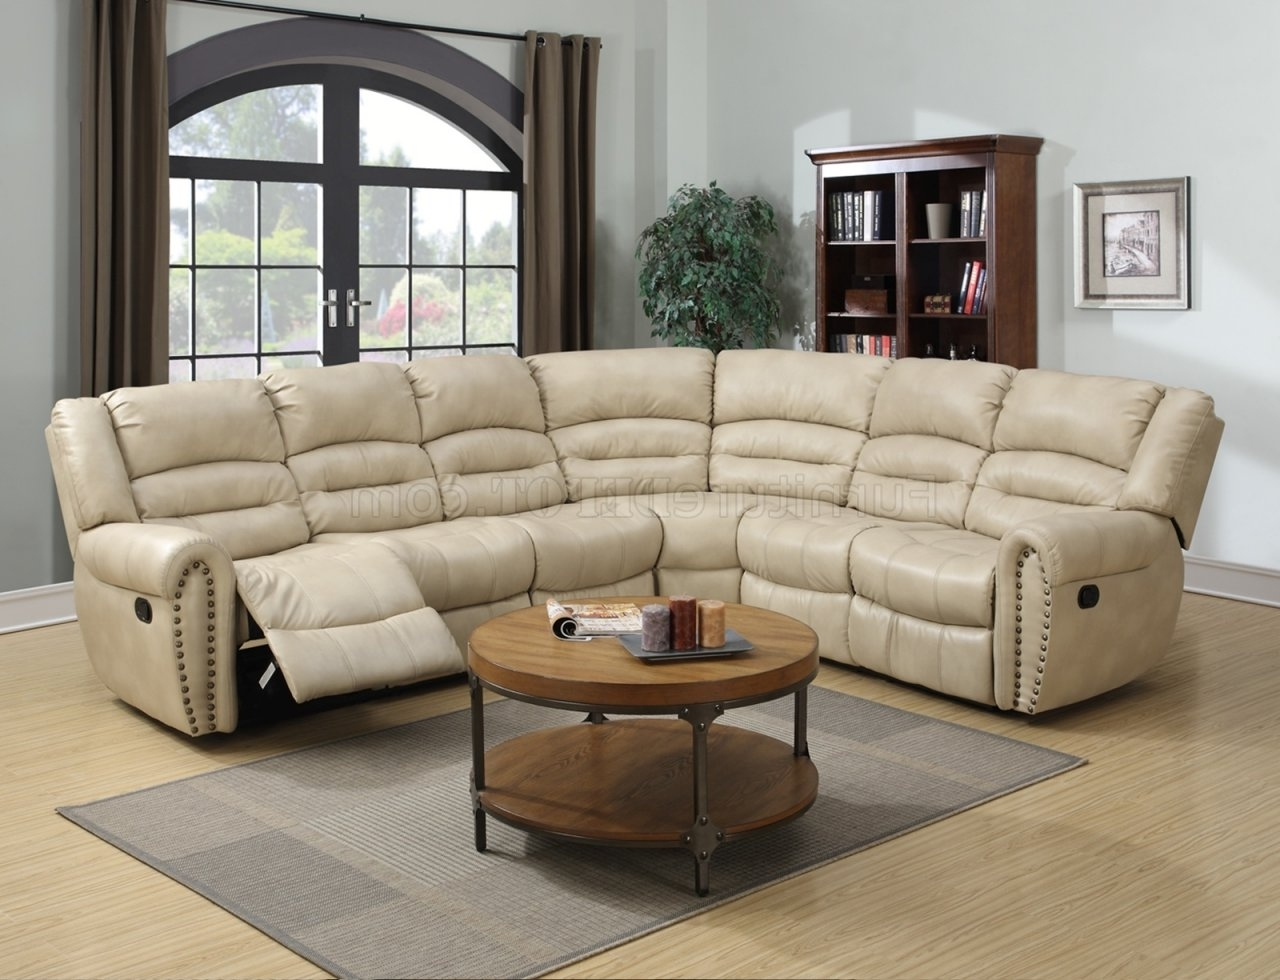 Famous Leather Motion Sectional Sofas In G687 Motion Sectional Sofa In Beige Bonded Leatherglory (View 2 of 20)